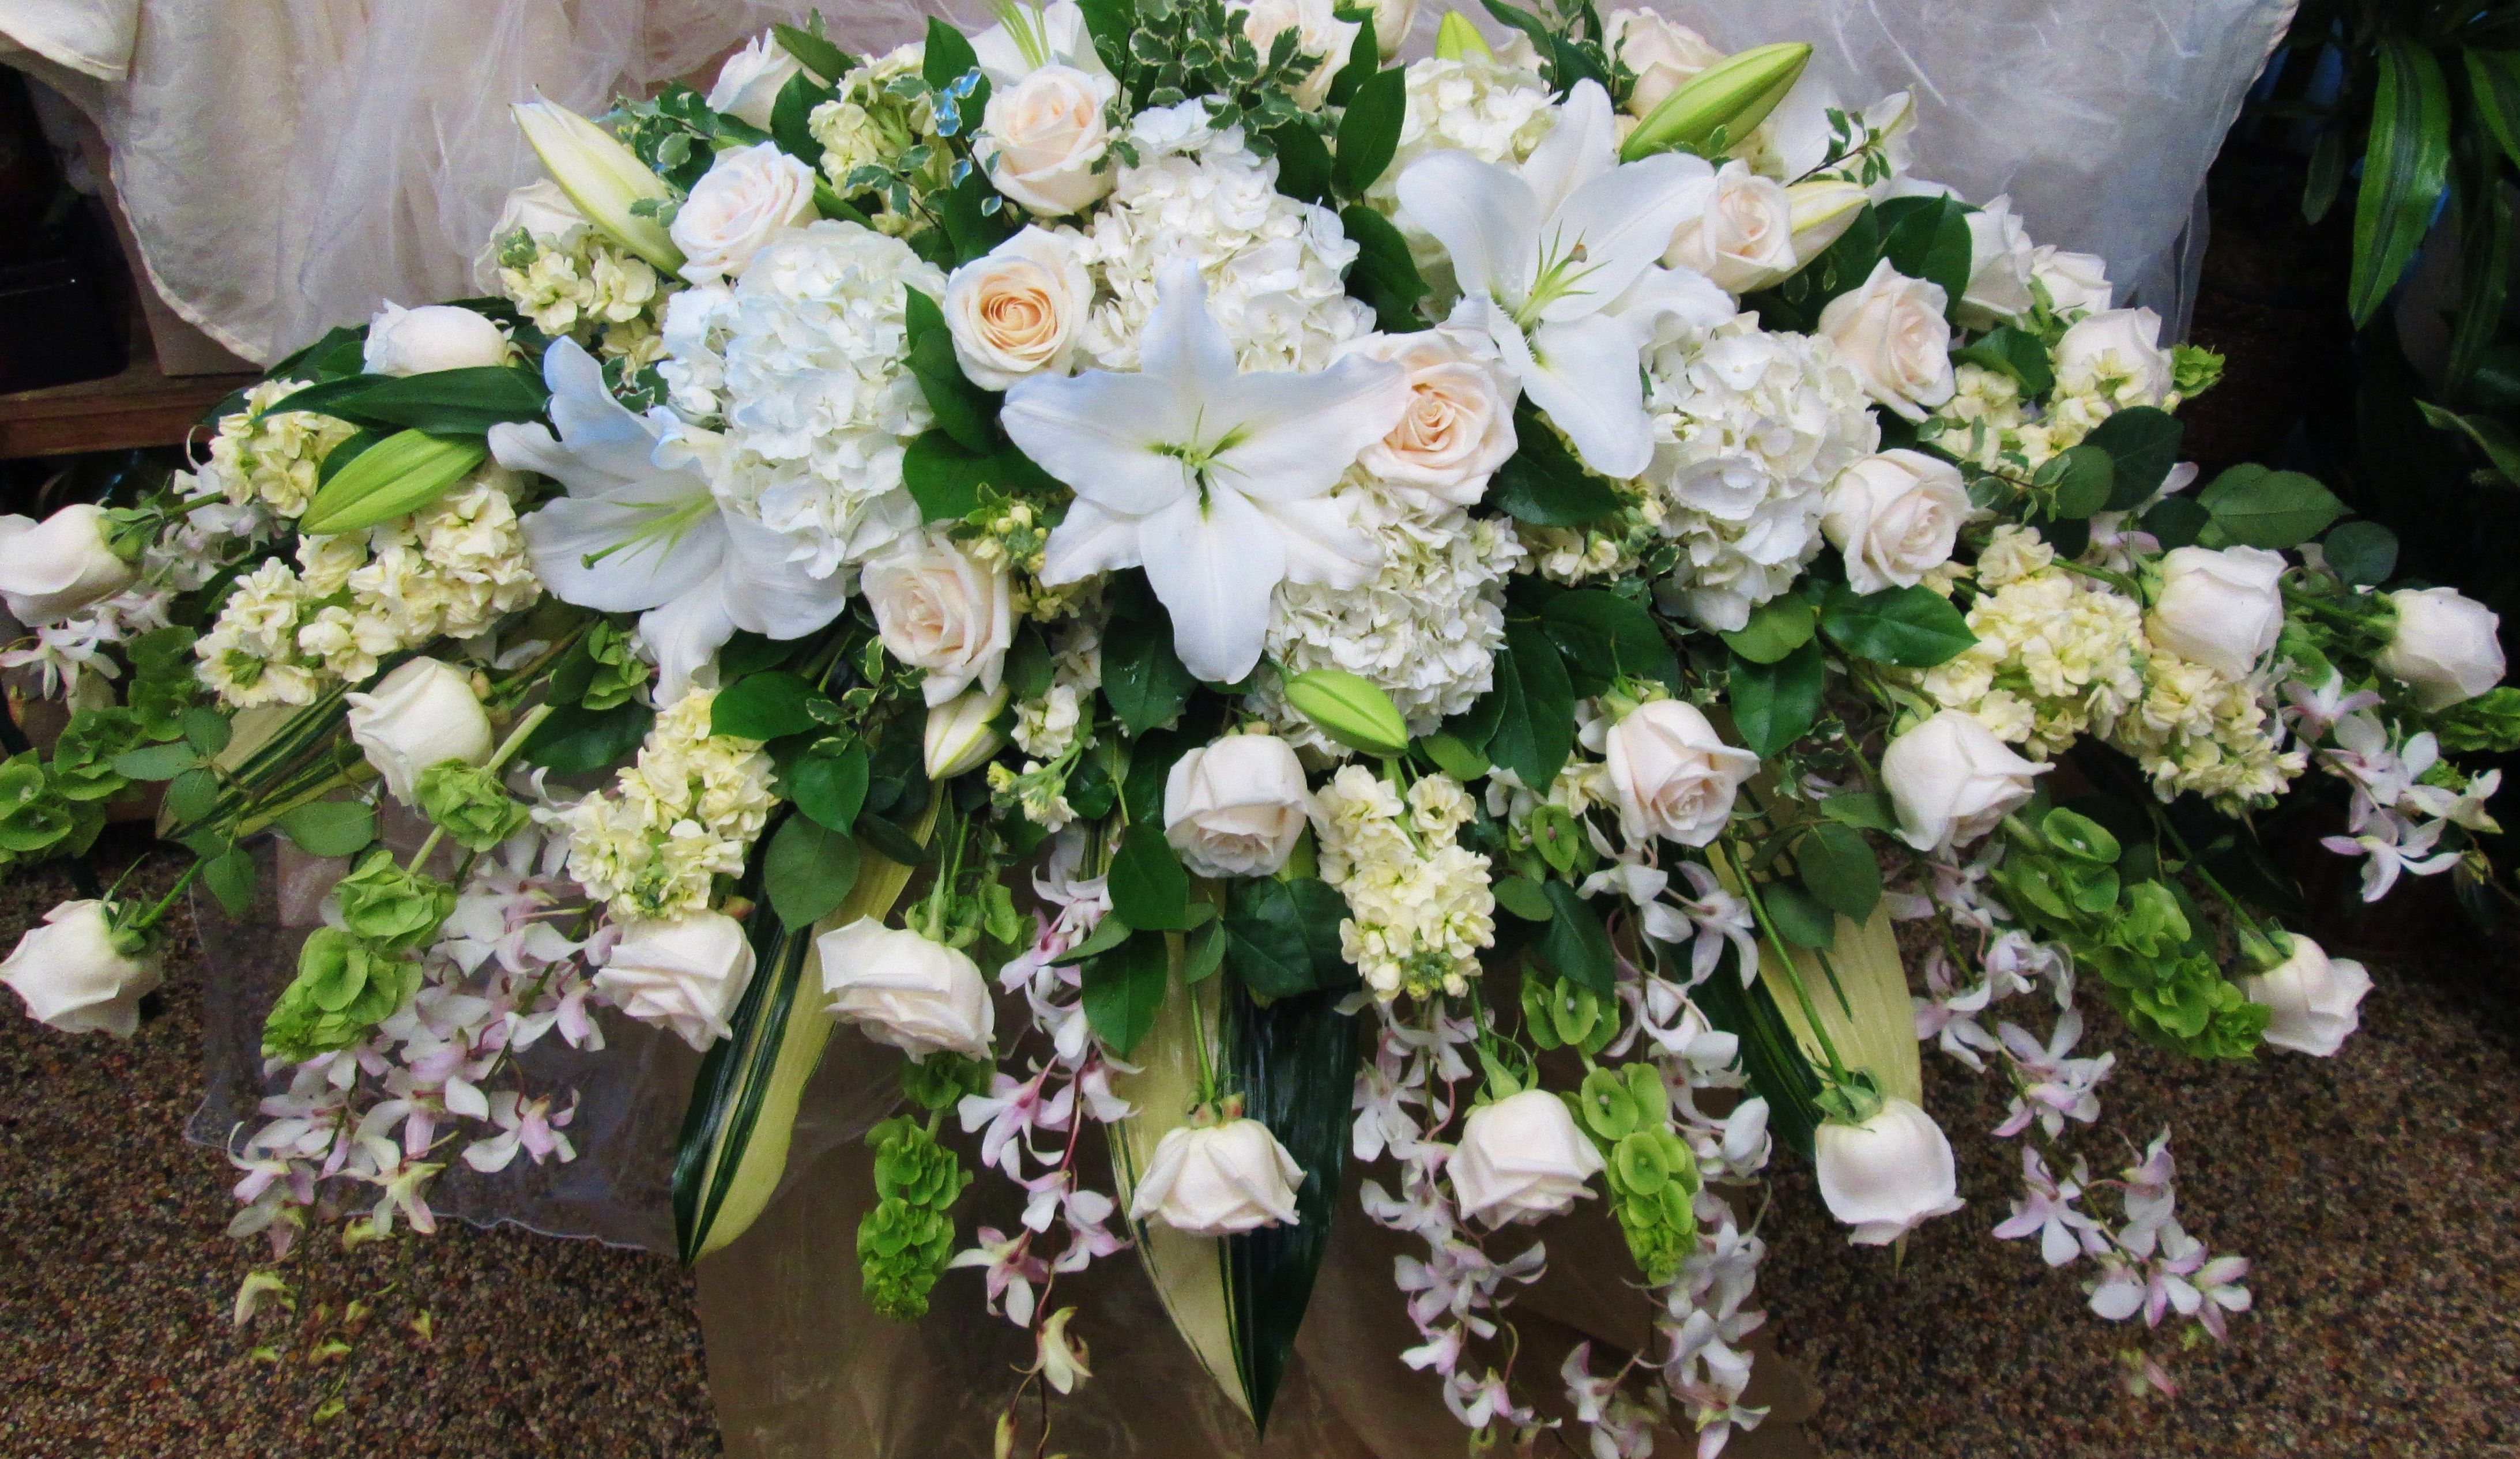 White Casket Spray Lilies Bells Of Ireland Yellow Stock Dendrobium Orchids White Roses And Ve Funeral Flowers Casket Flowers Funeral Flower Arrangements